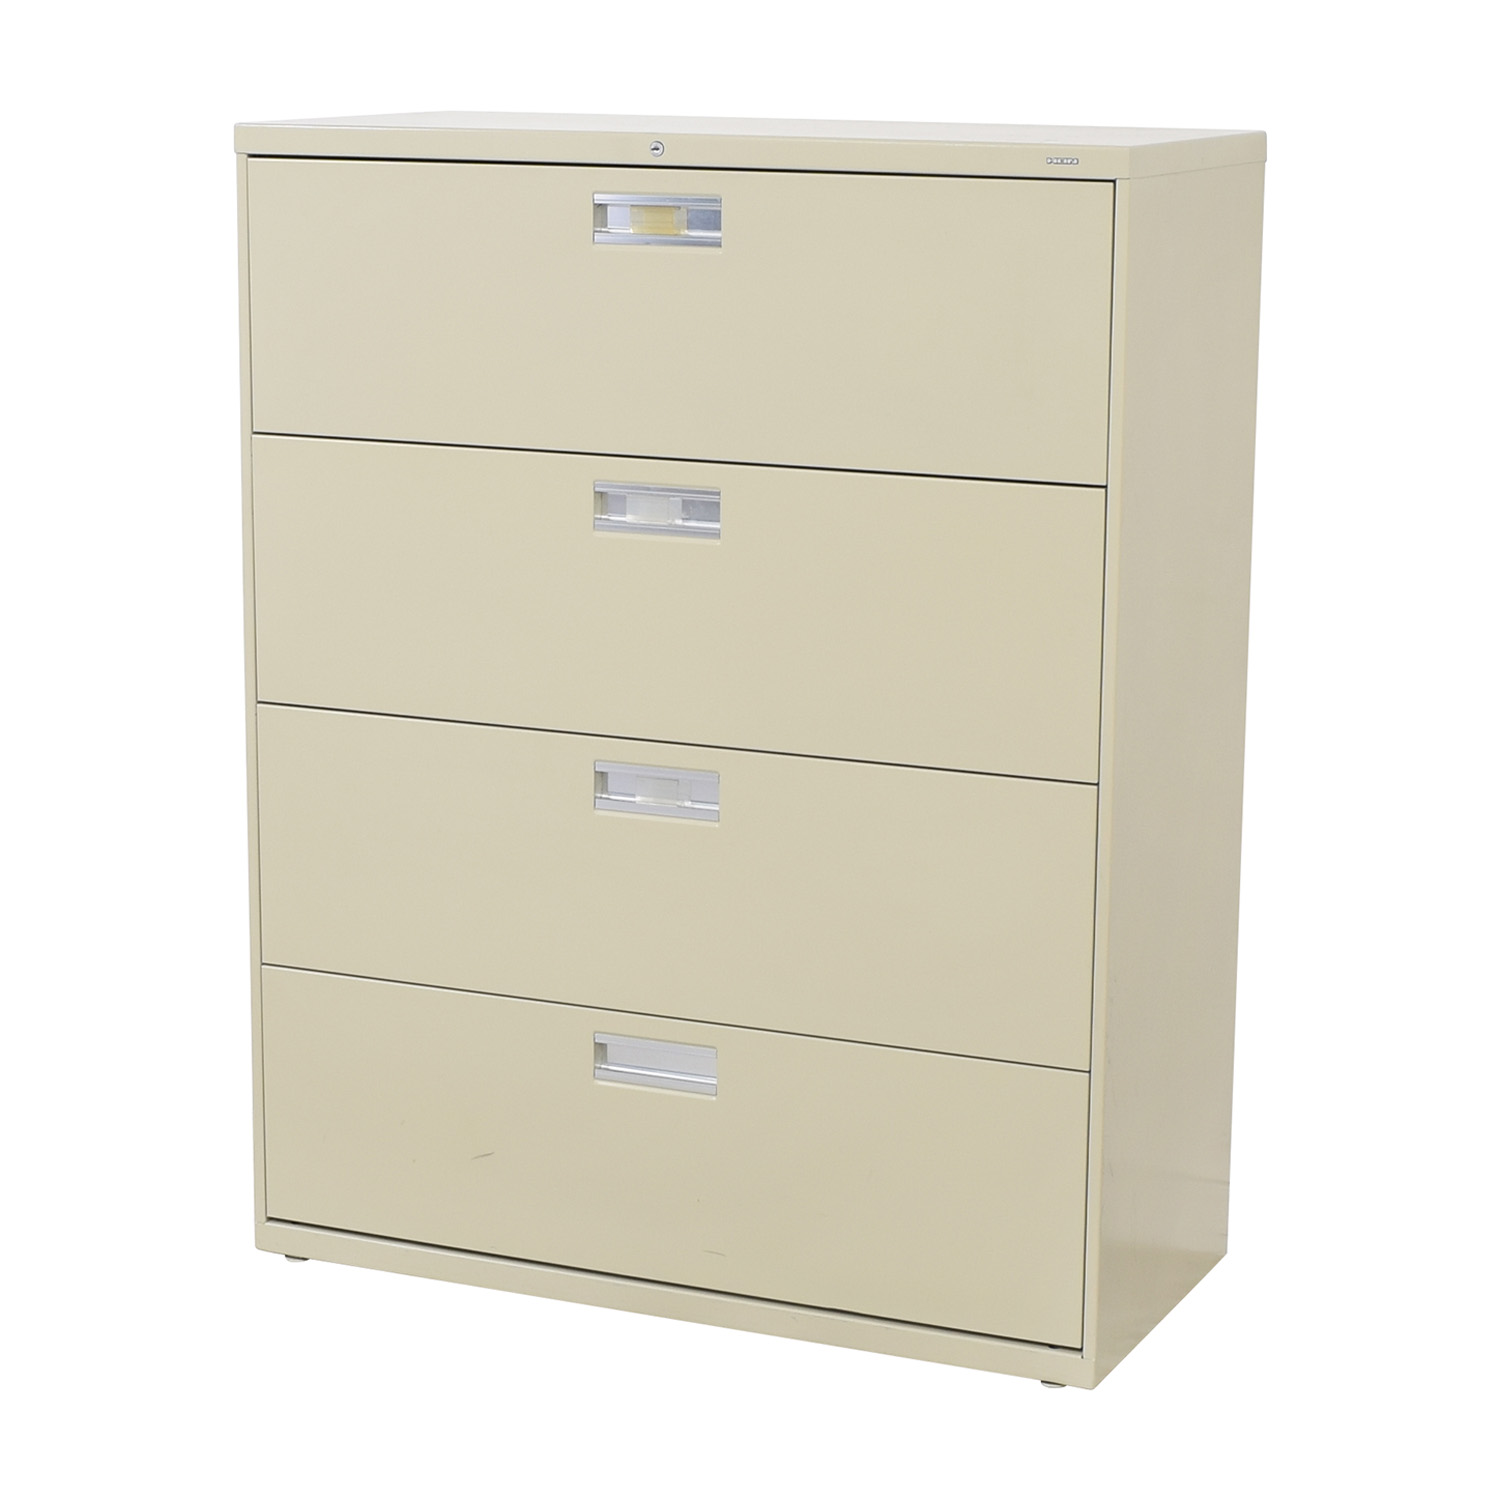 Hon Hon Four Drawer File Cabinet dimensions